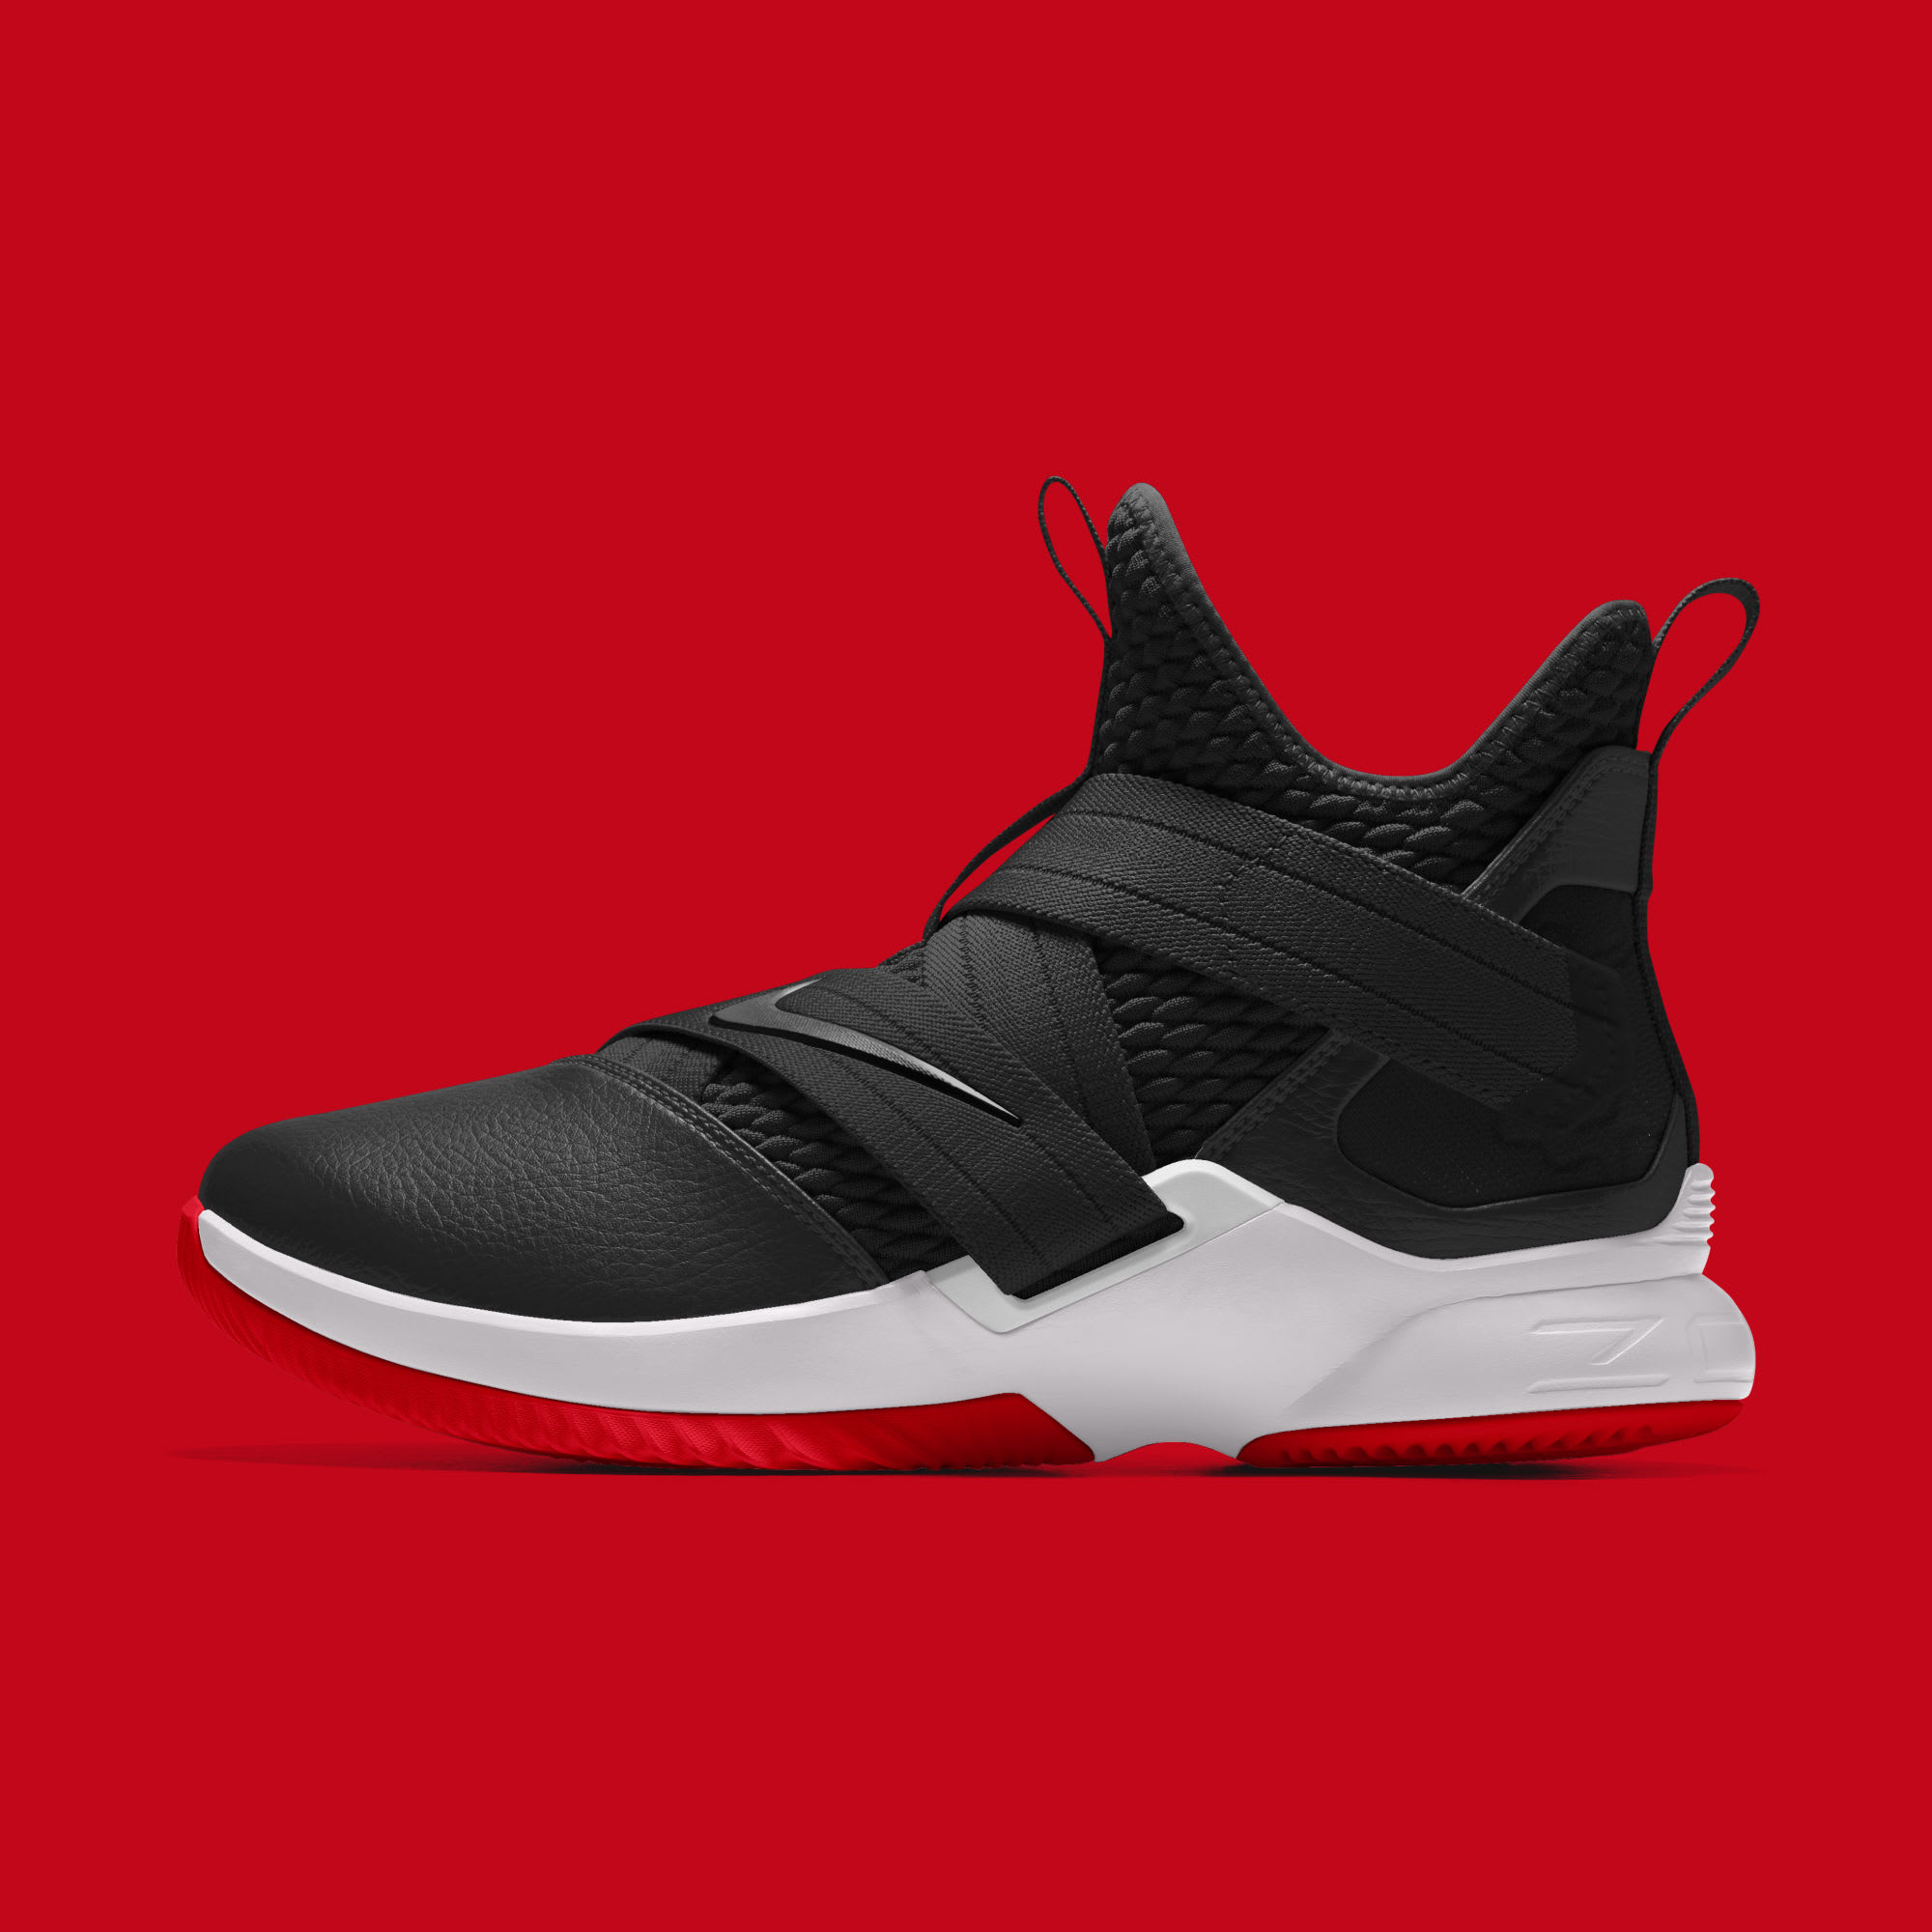 buy online 8a272 59926 ... best price nikeid lebron soldier 12 bred 1bf8a cbfcc